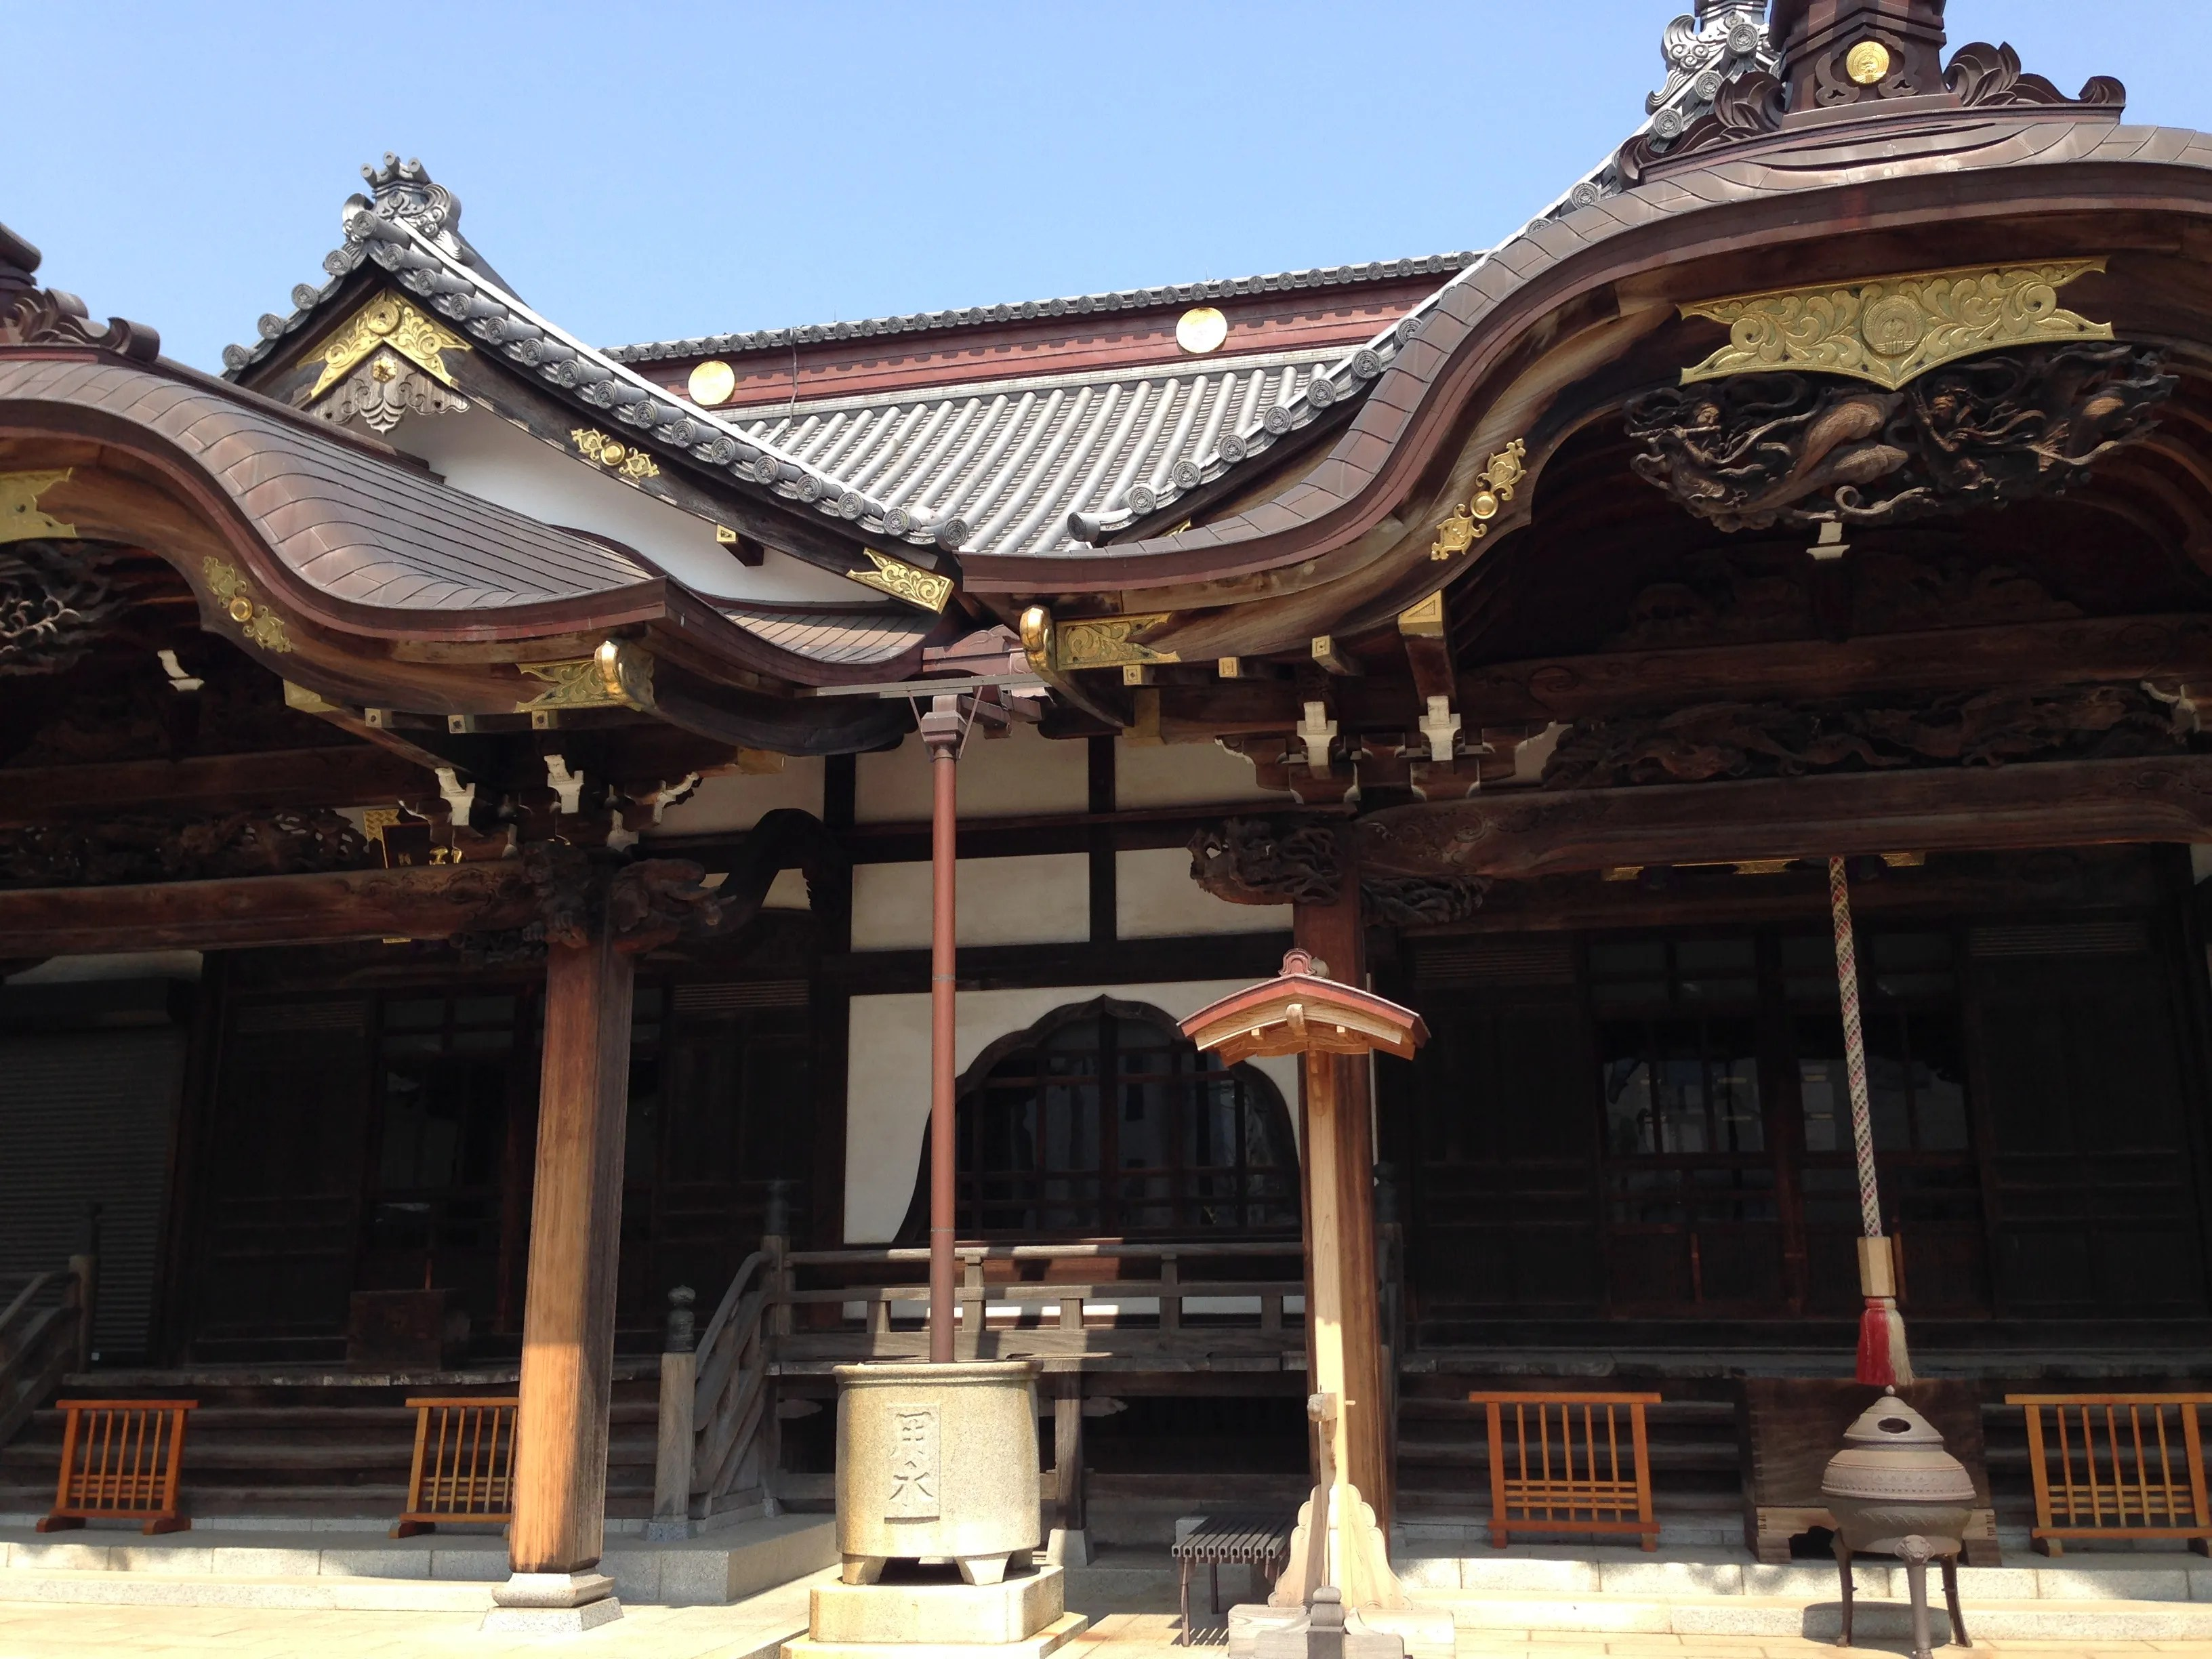 A temple and a shrine side by side